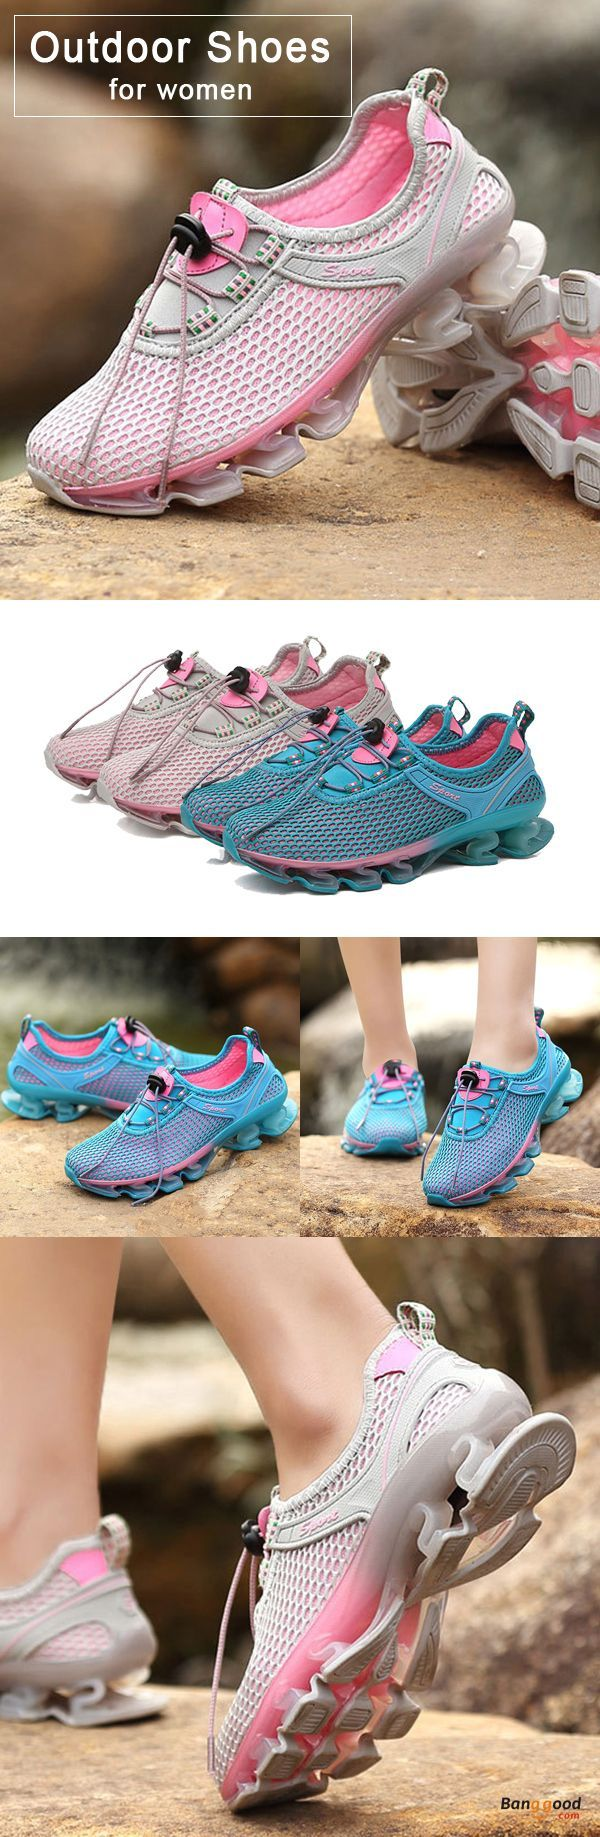 US$33.89 + Free shipping. Size: 5~9. Color: Blue, Pink. Fall in love with casual and sport style! Outdoor Running Lace Up Shock Absorption Sneakers For Women.